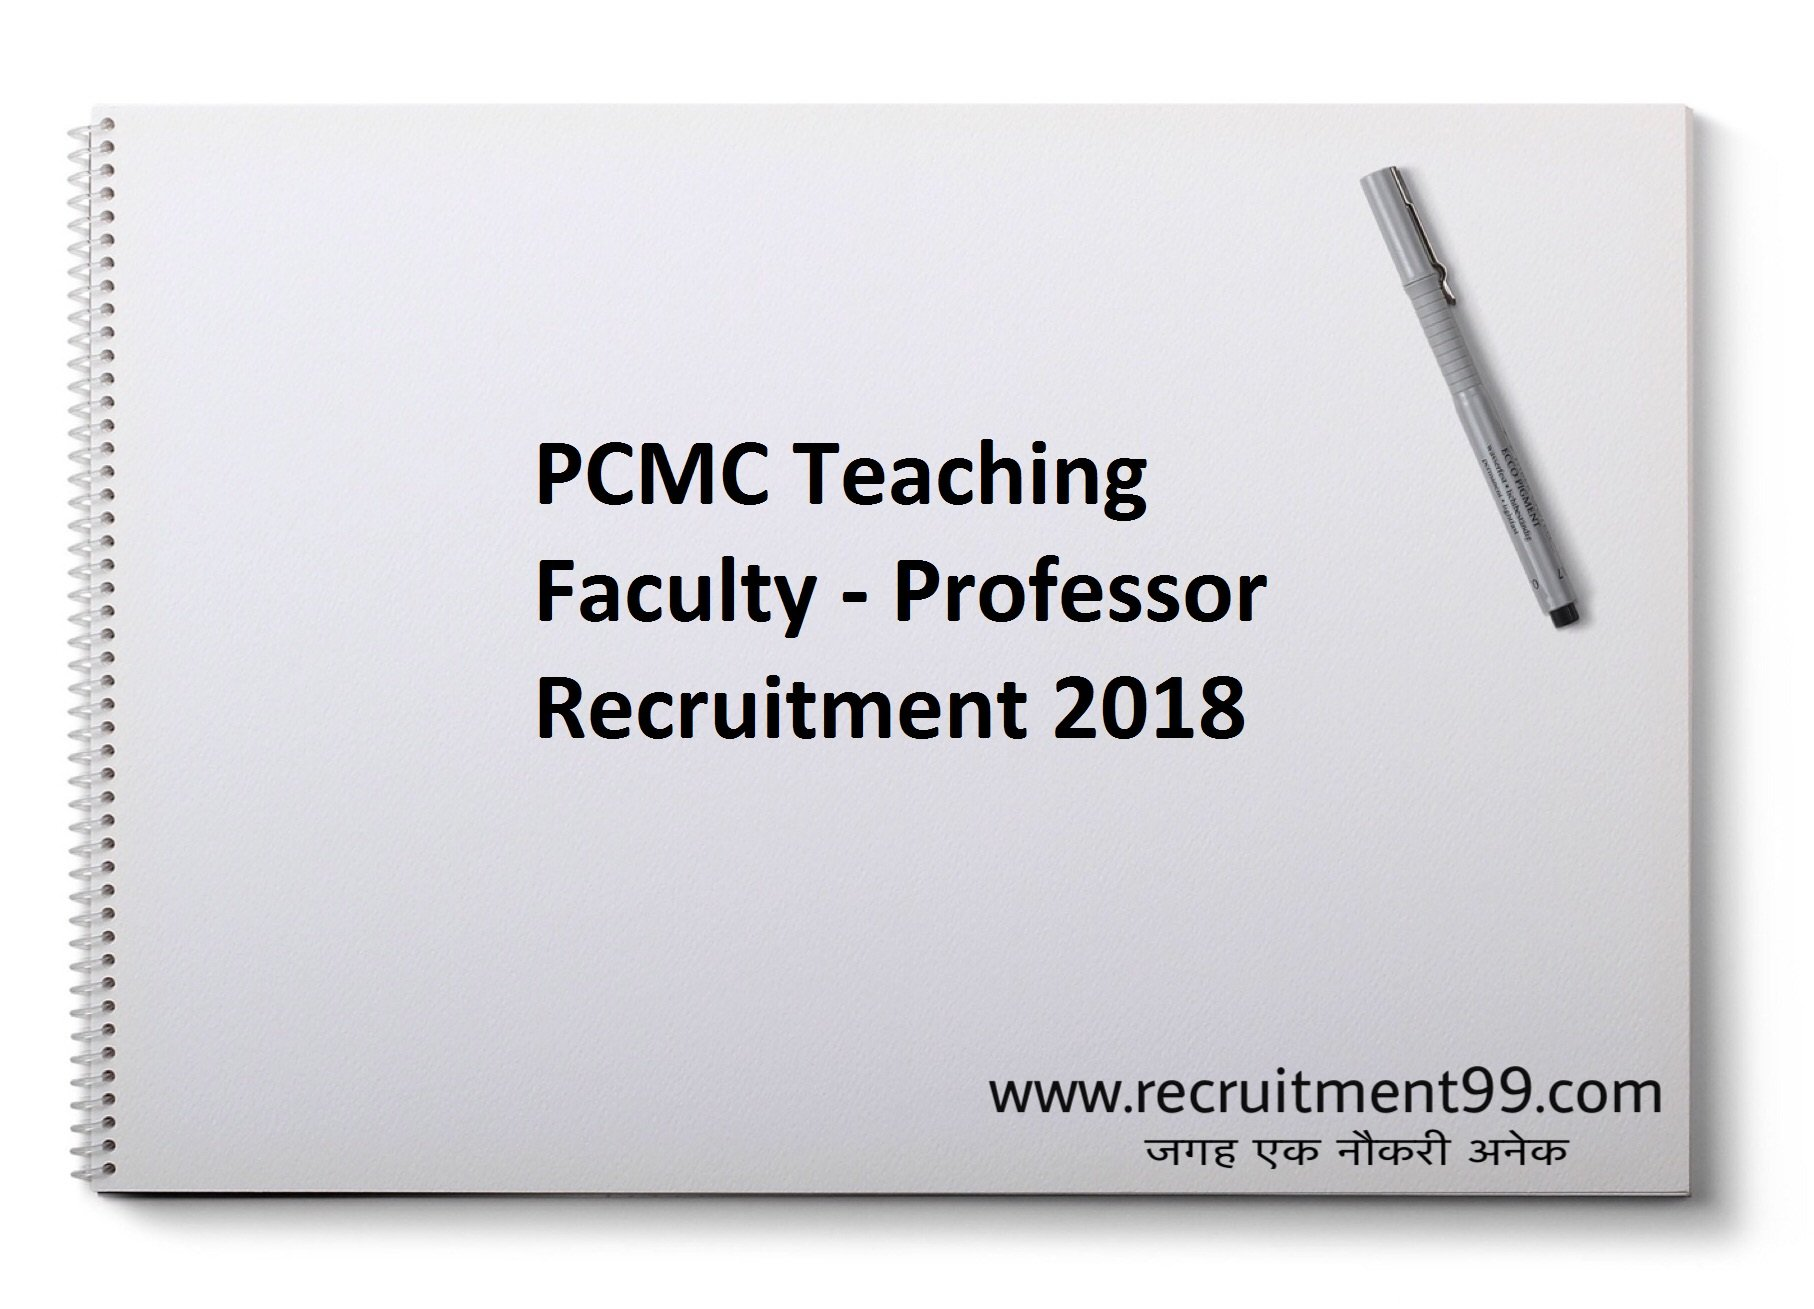 PCMC Teaching Faculty Recruitment Admit Card Result 2018